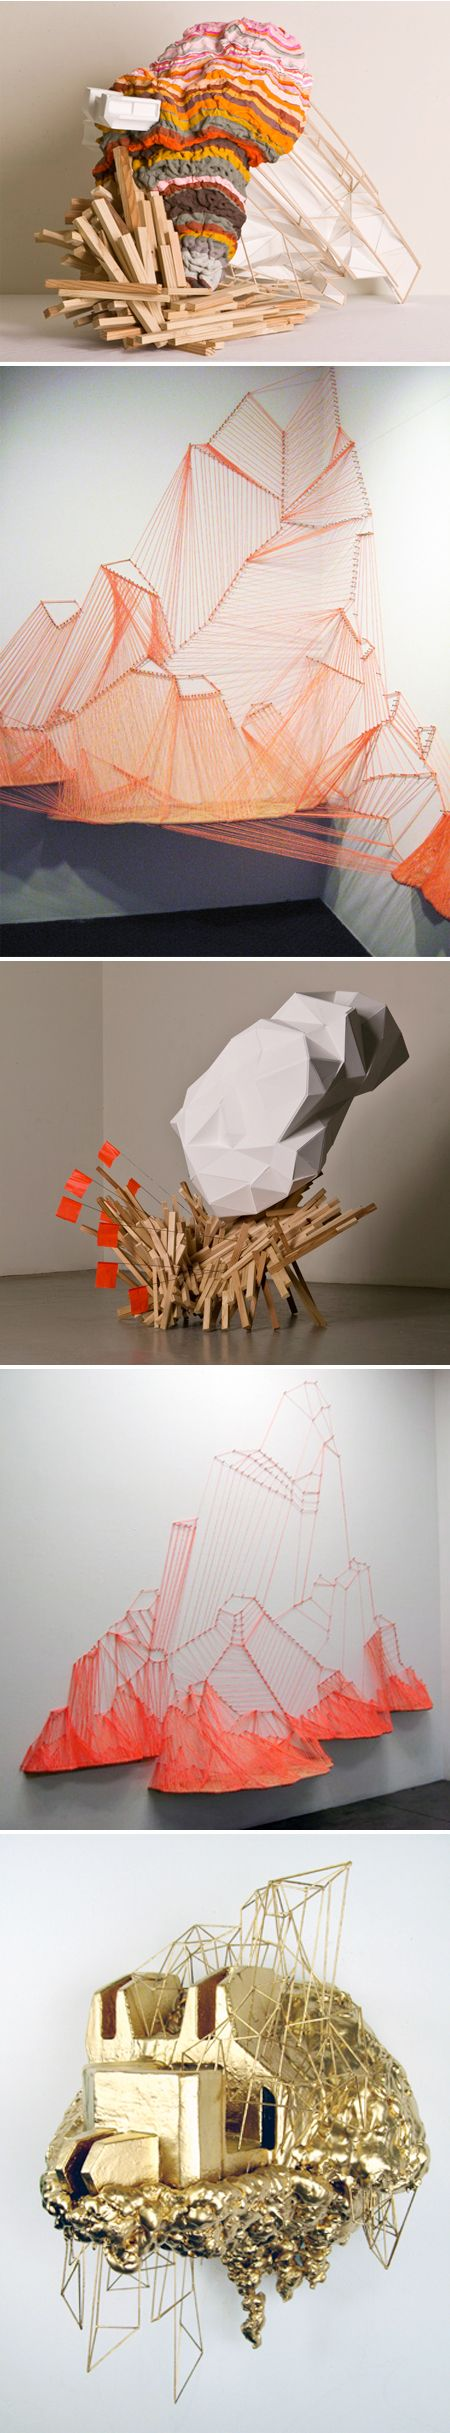 "sculptures by LA based artist Aili Schmeltz. ""I am fascinated by the hybridized structures and blatant artifice of the city in both it's natural and man made environments where hill top homes float precariously overhead on earth that has a topographical complexity of embedded catastrophe."""